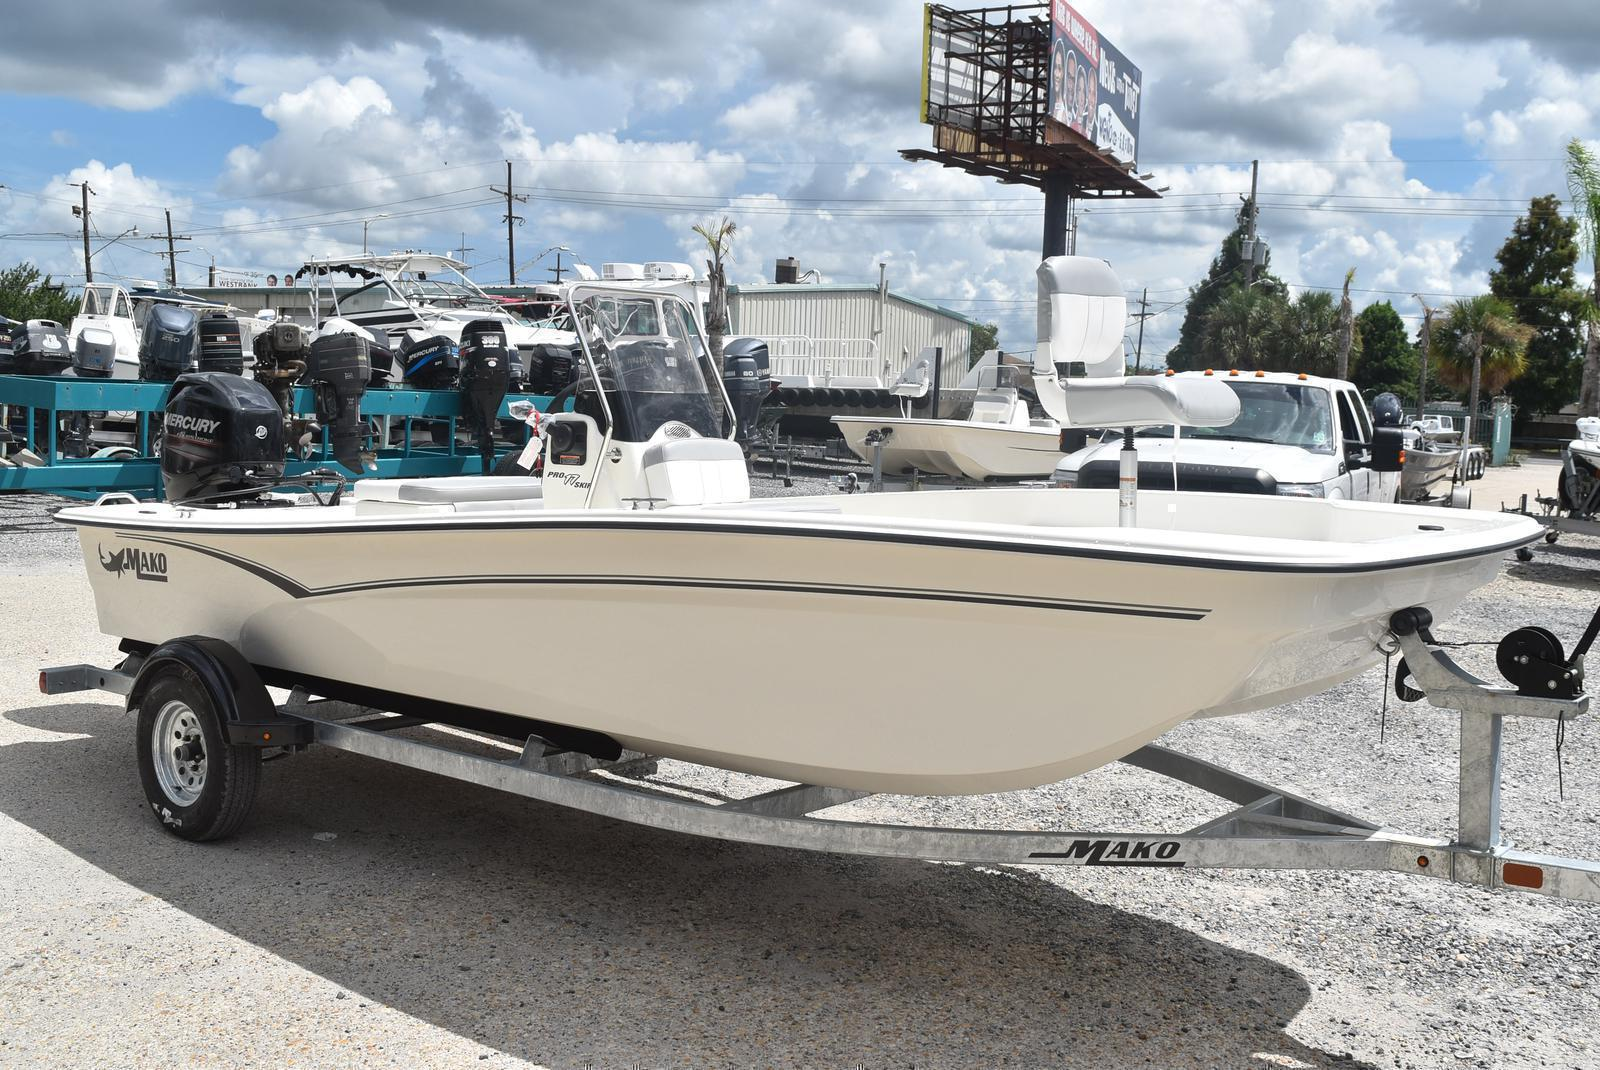 2020 Mako boat for sale, model of the boat is Pro Skiff 17, 75 ELPT & Image # 632 of 702